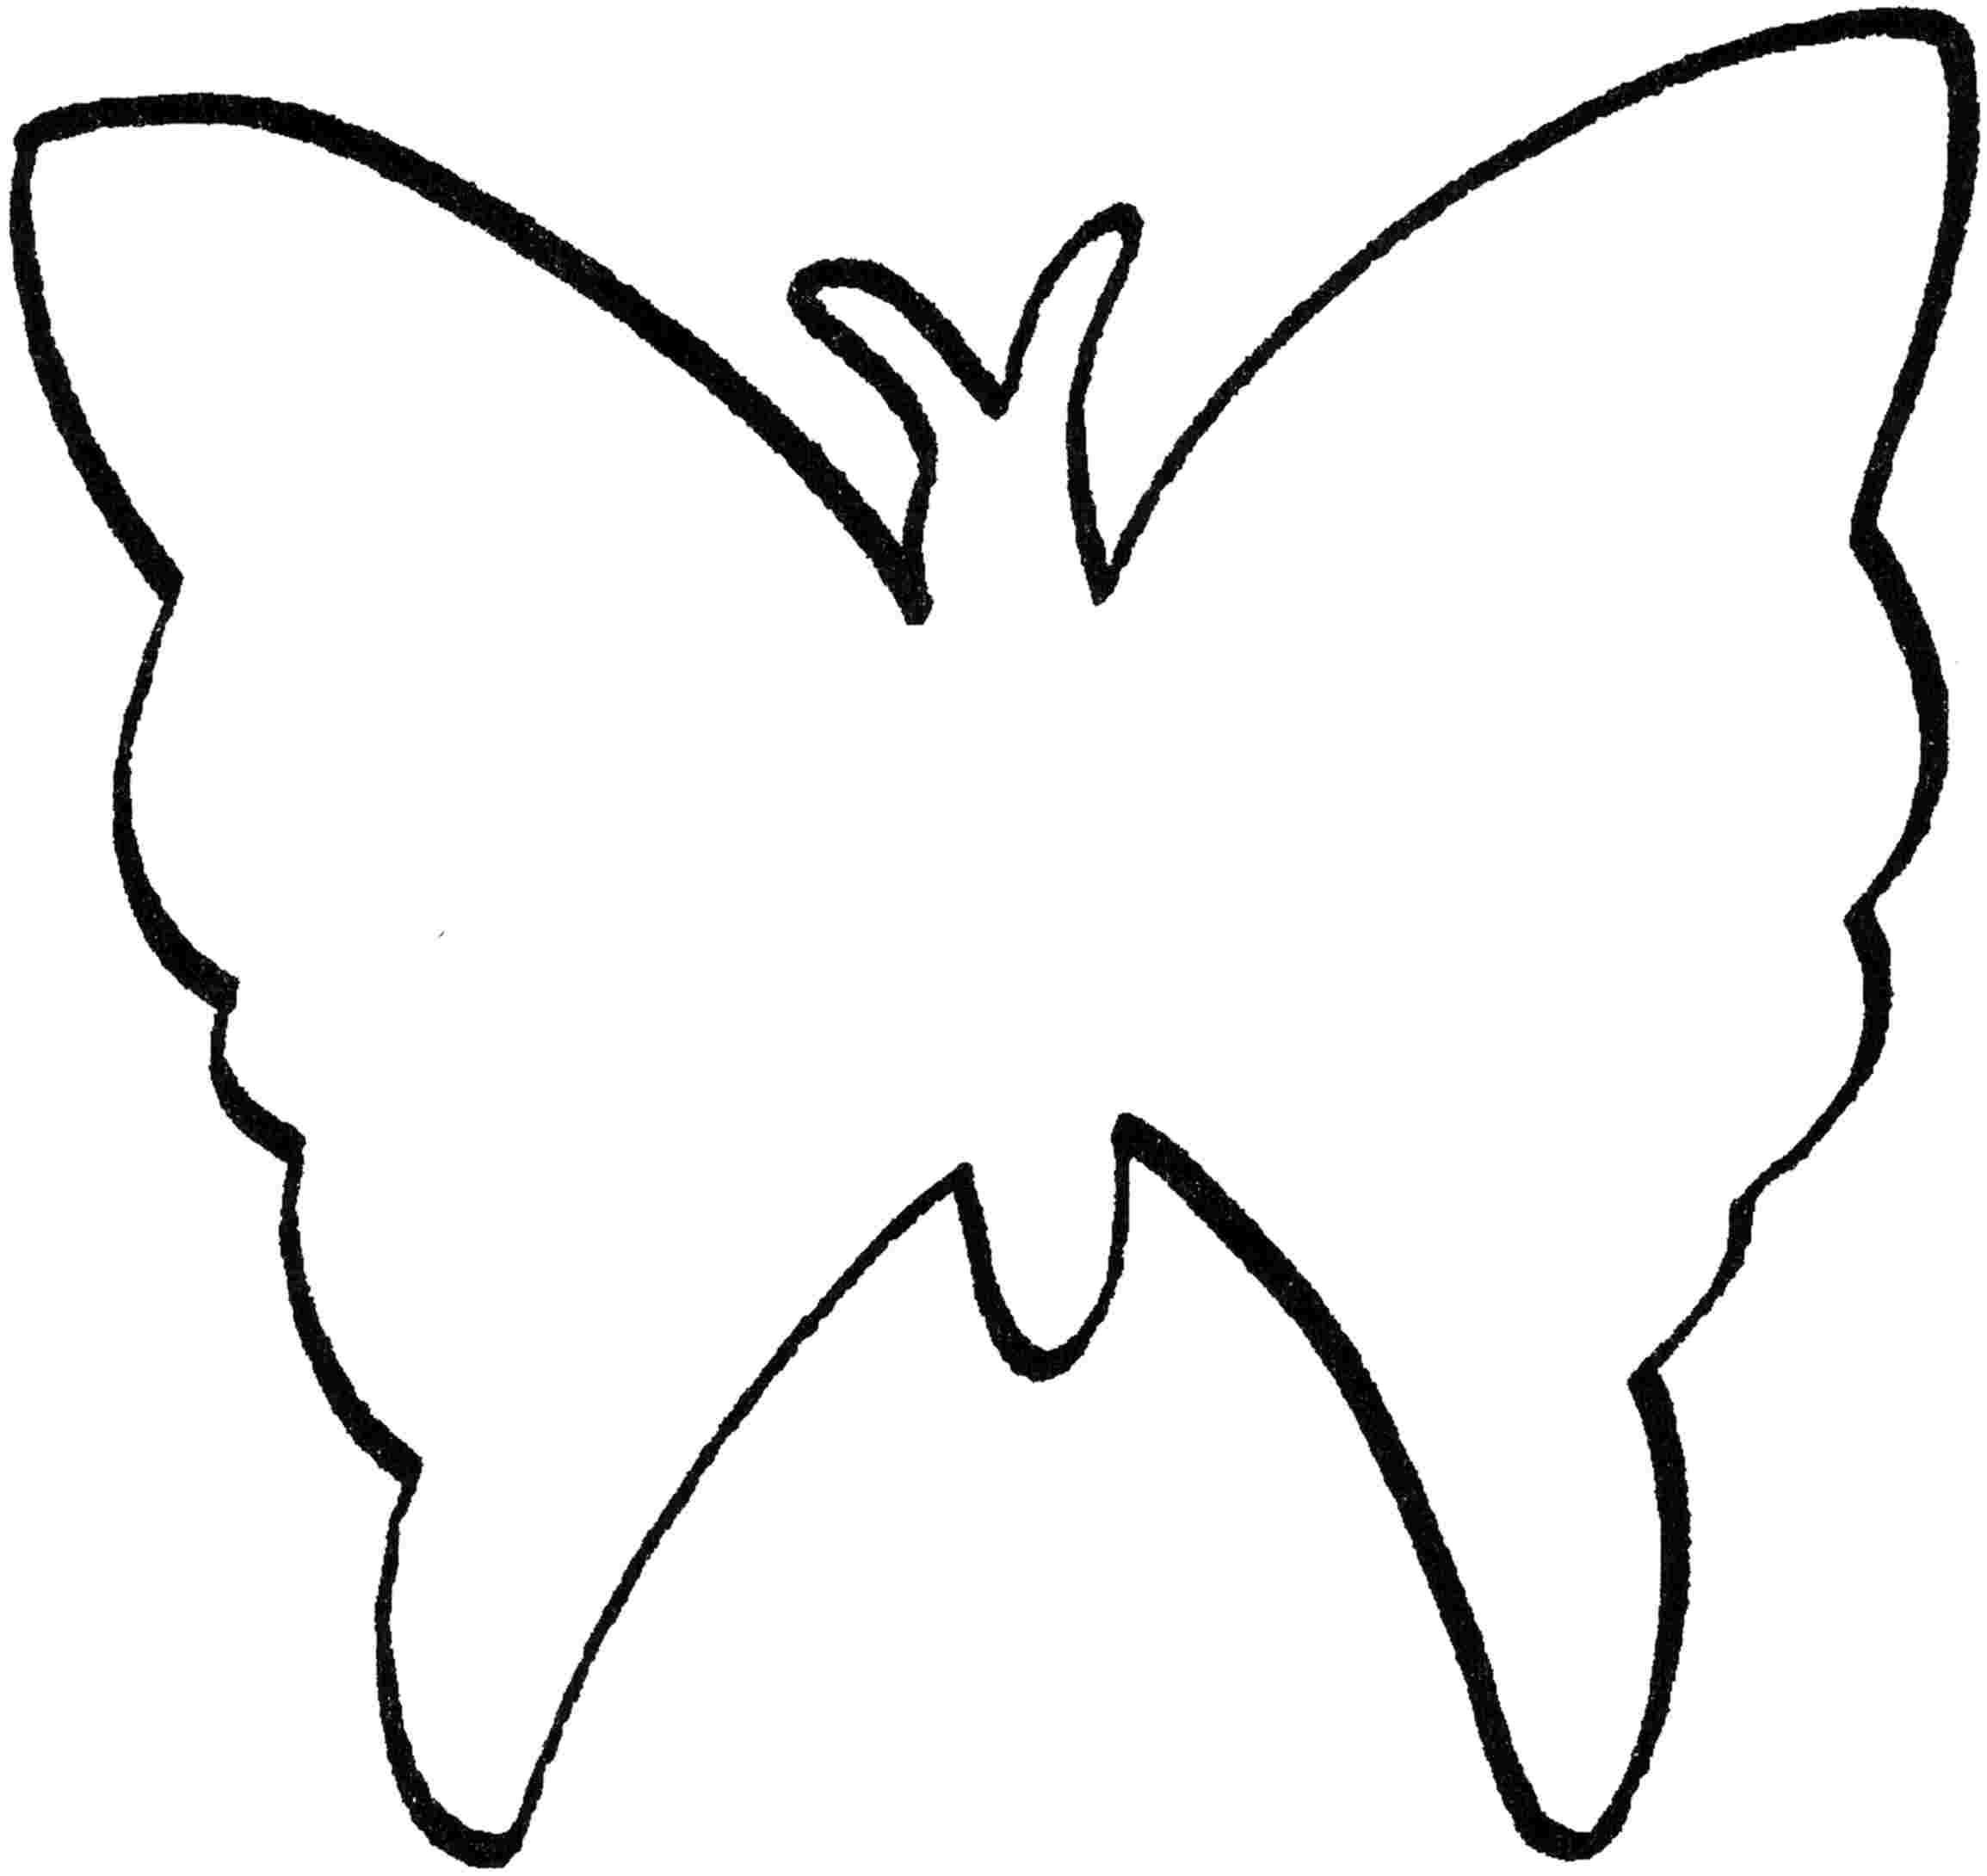 Butterfly coloring pages - Free Butterfly Coloring Pages From Wwwthebutterflysitecom